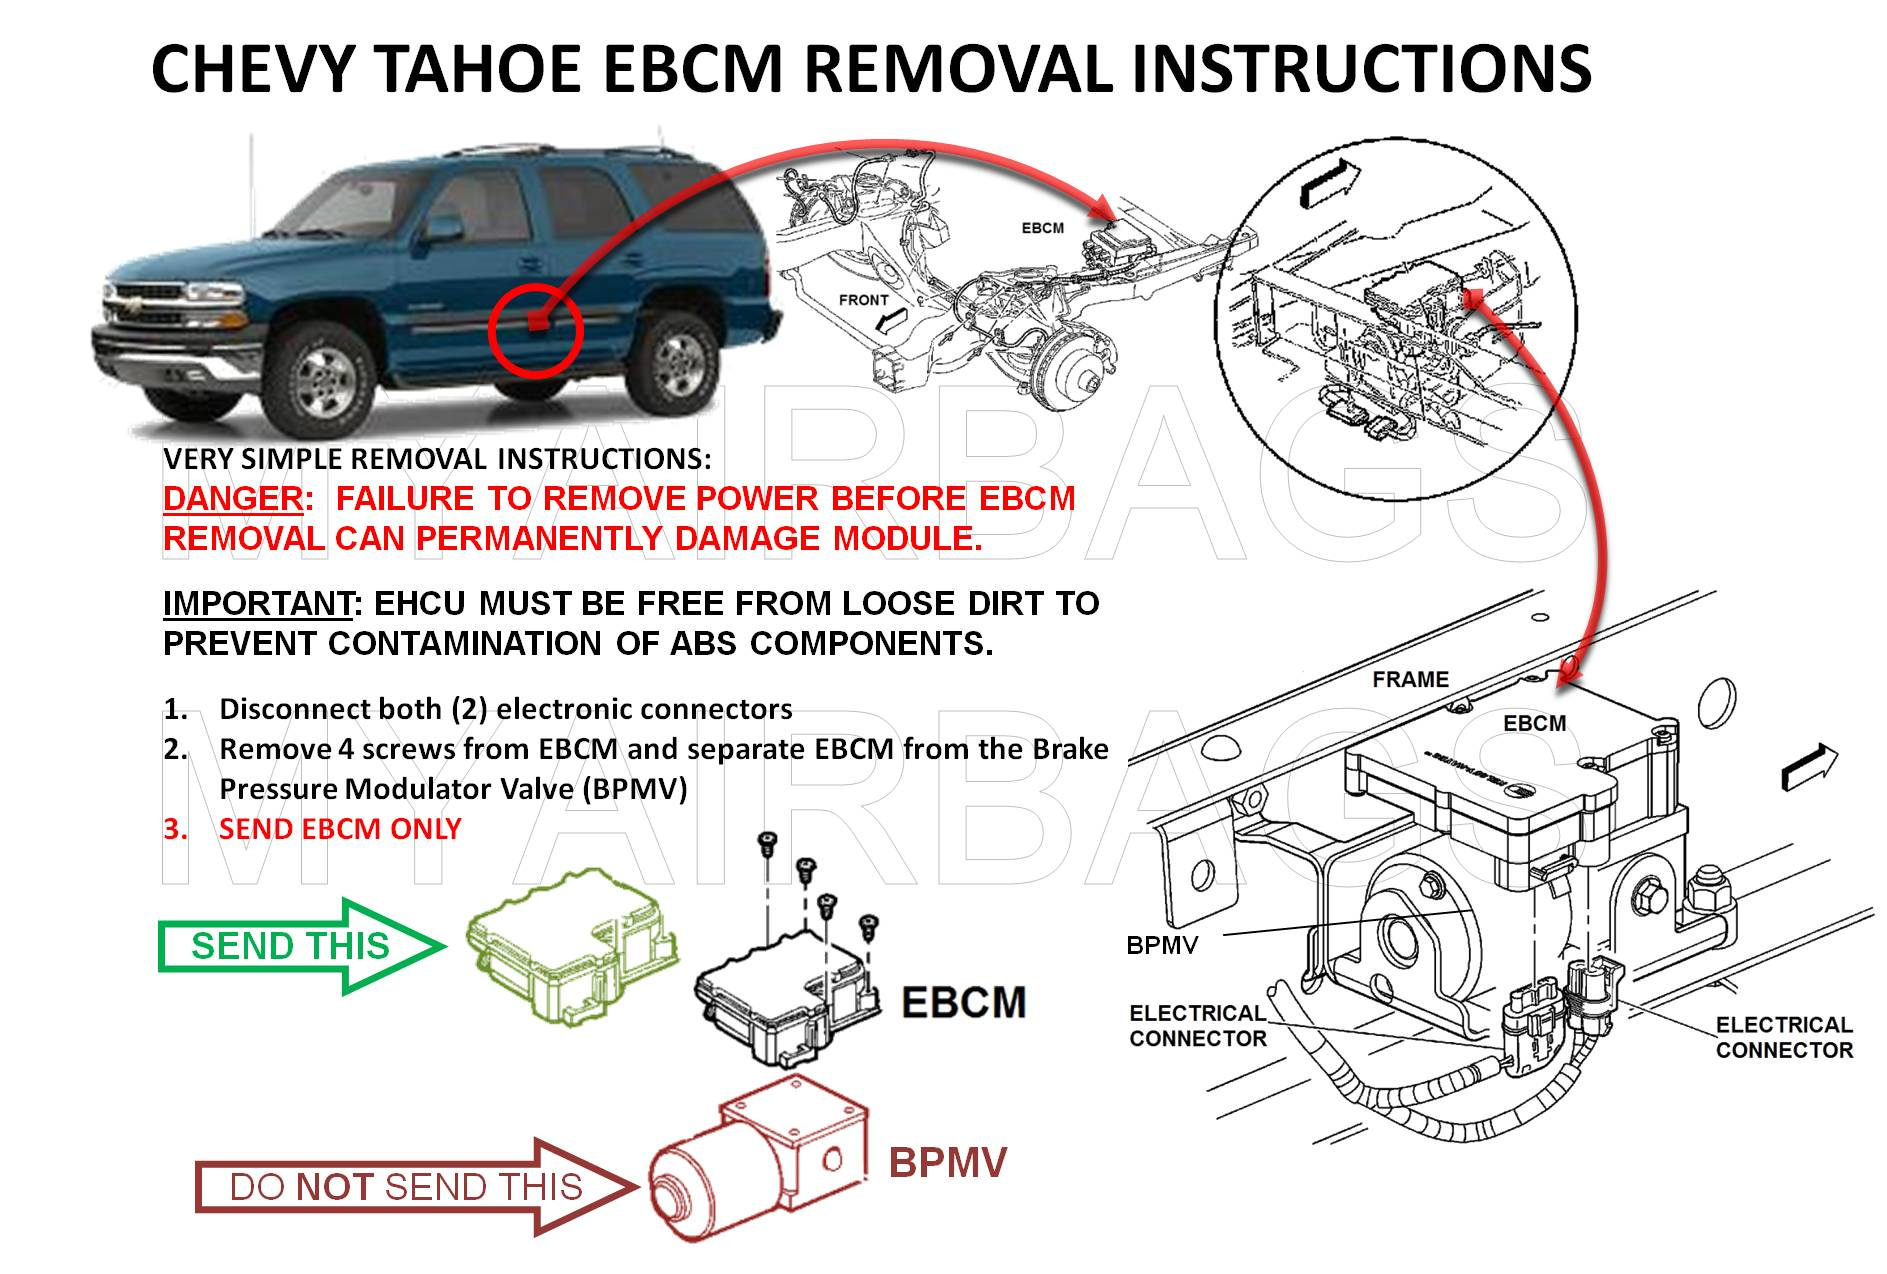 Location Of 2001 Suburban Abs Control Moduleon Chevy Tahoe Wiring Diagram